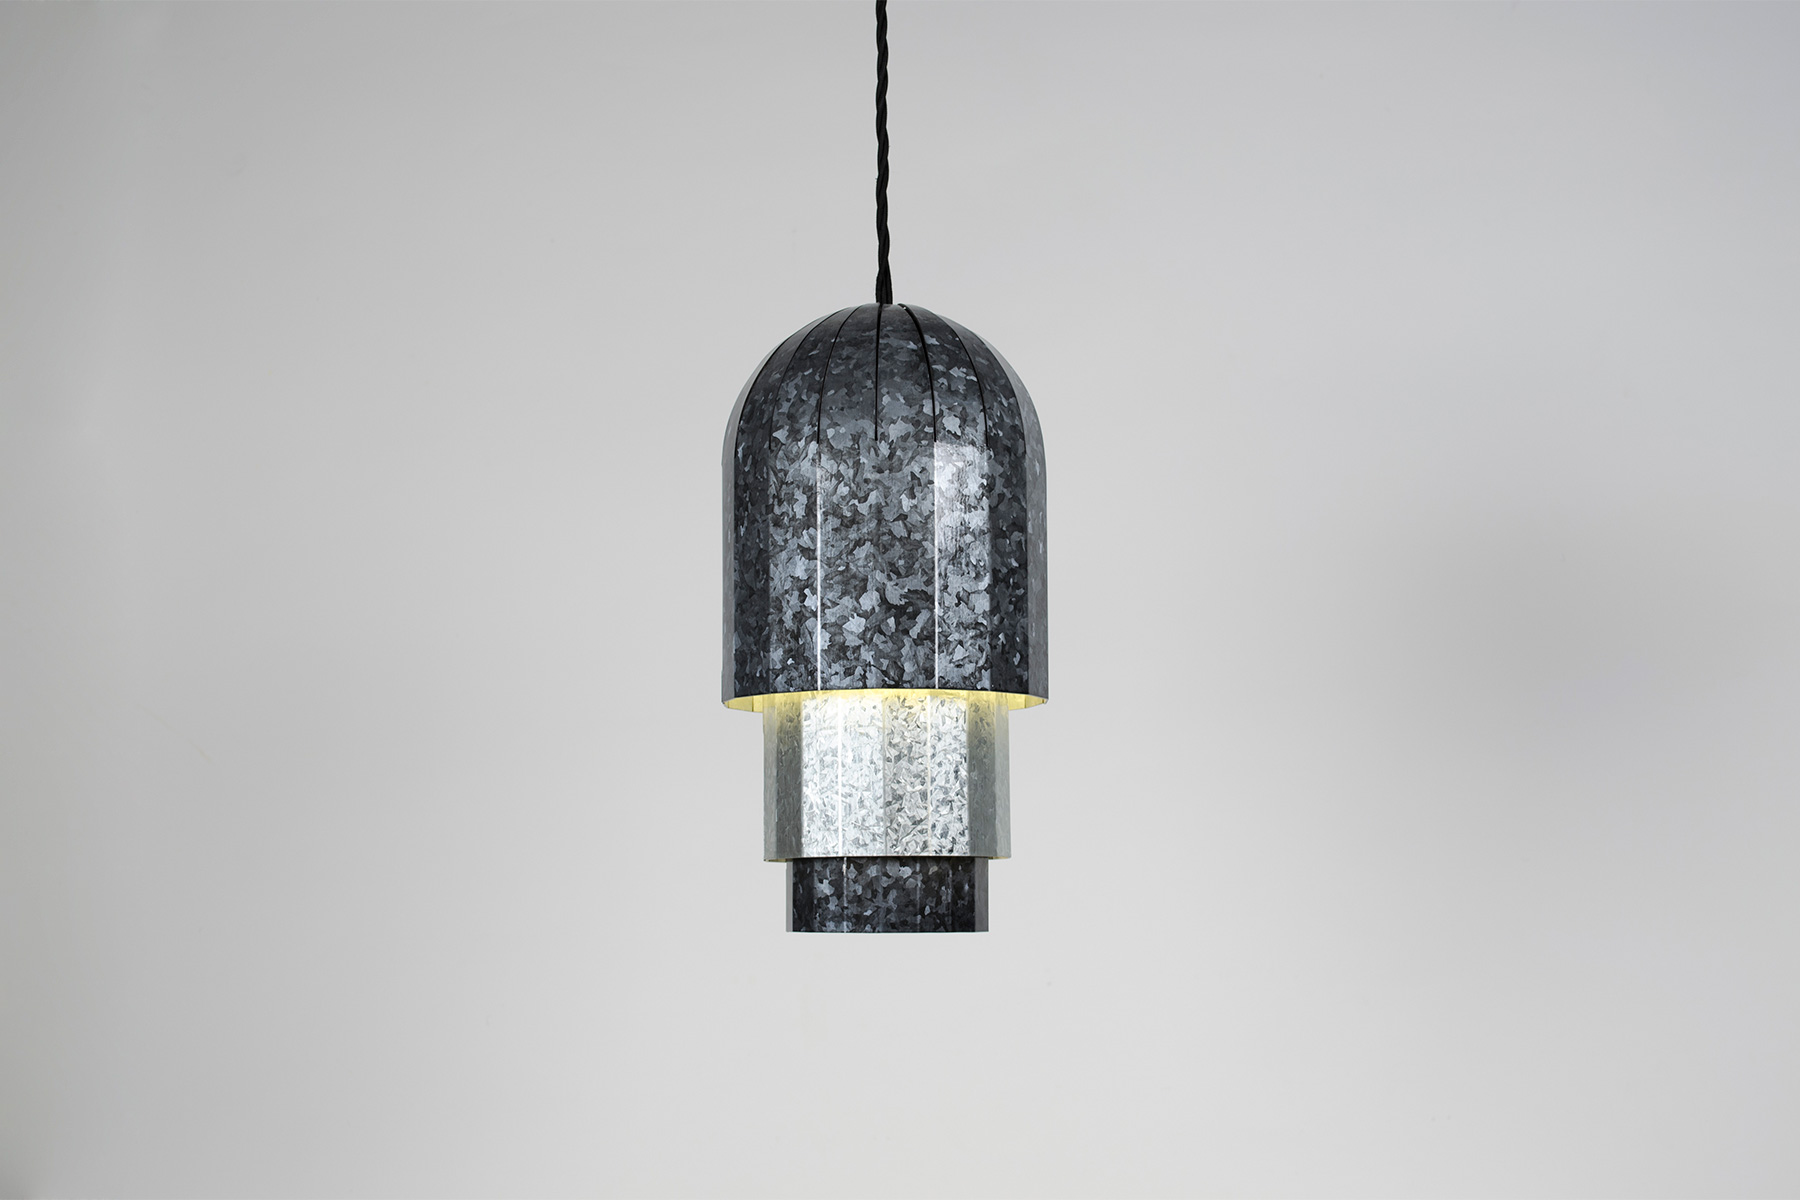 A pendant light from Seubert's new  Regalvanize  project.